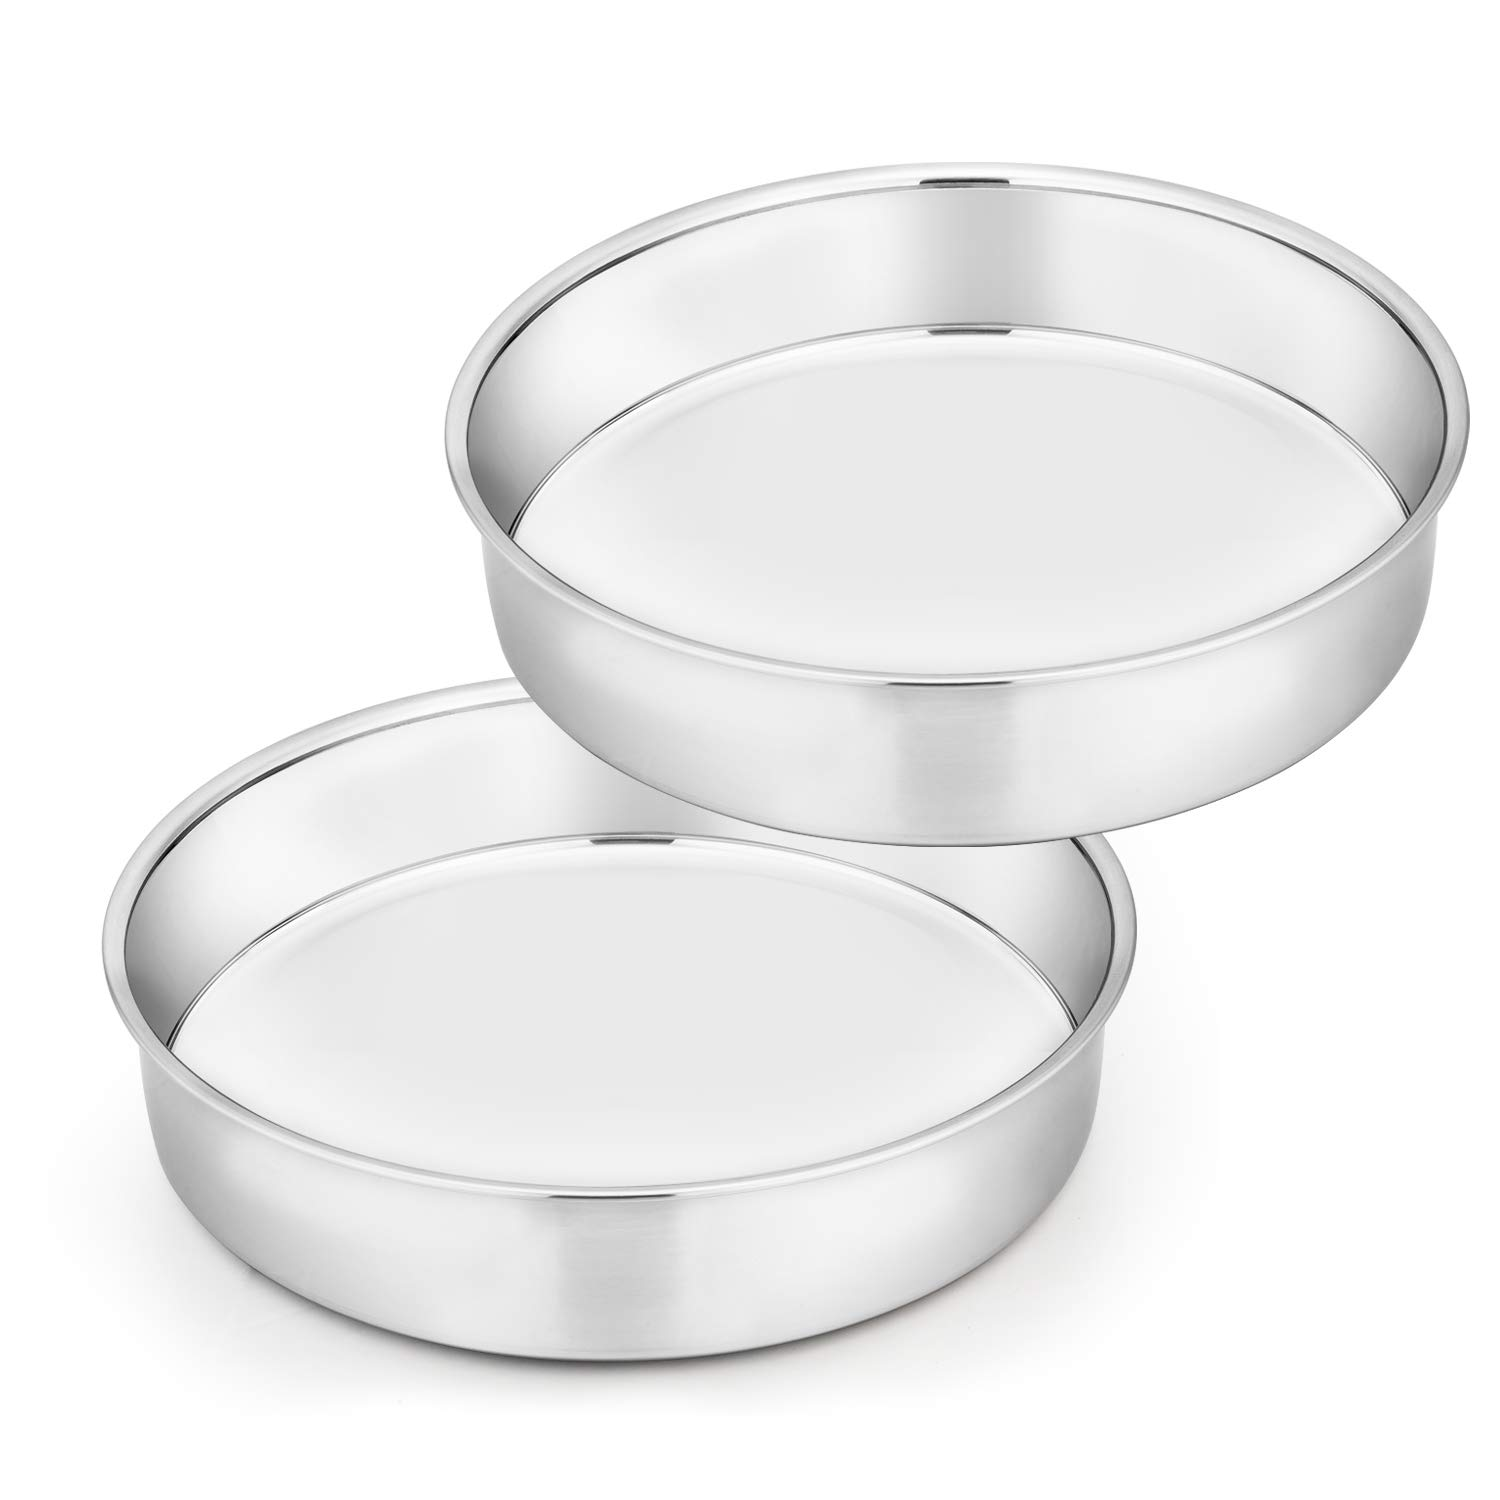 TeamFar Cake Pan Set of 2, 8 Inch Cake Pan Round Tier Cake Pan Set Stainless Steel, Healthy & Heavy Duty, Mirror Finish & Easy Clean, Dishwasher Safe